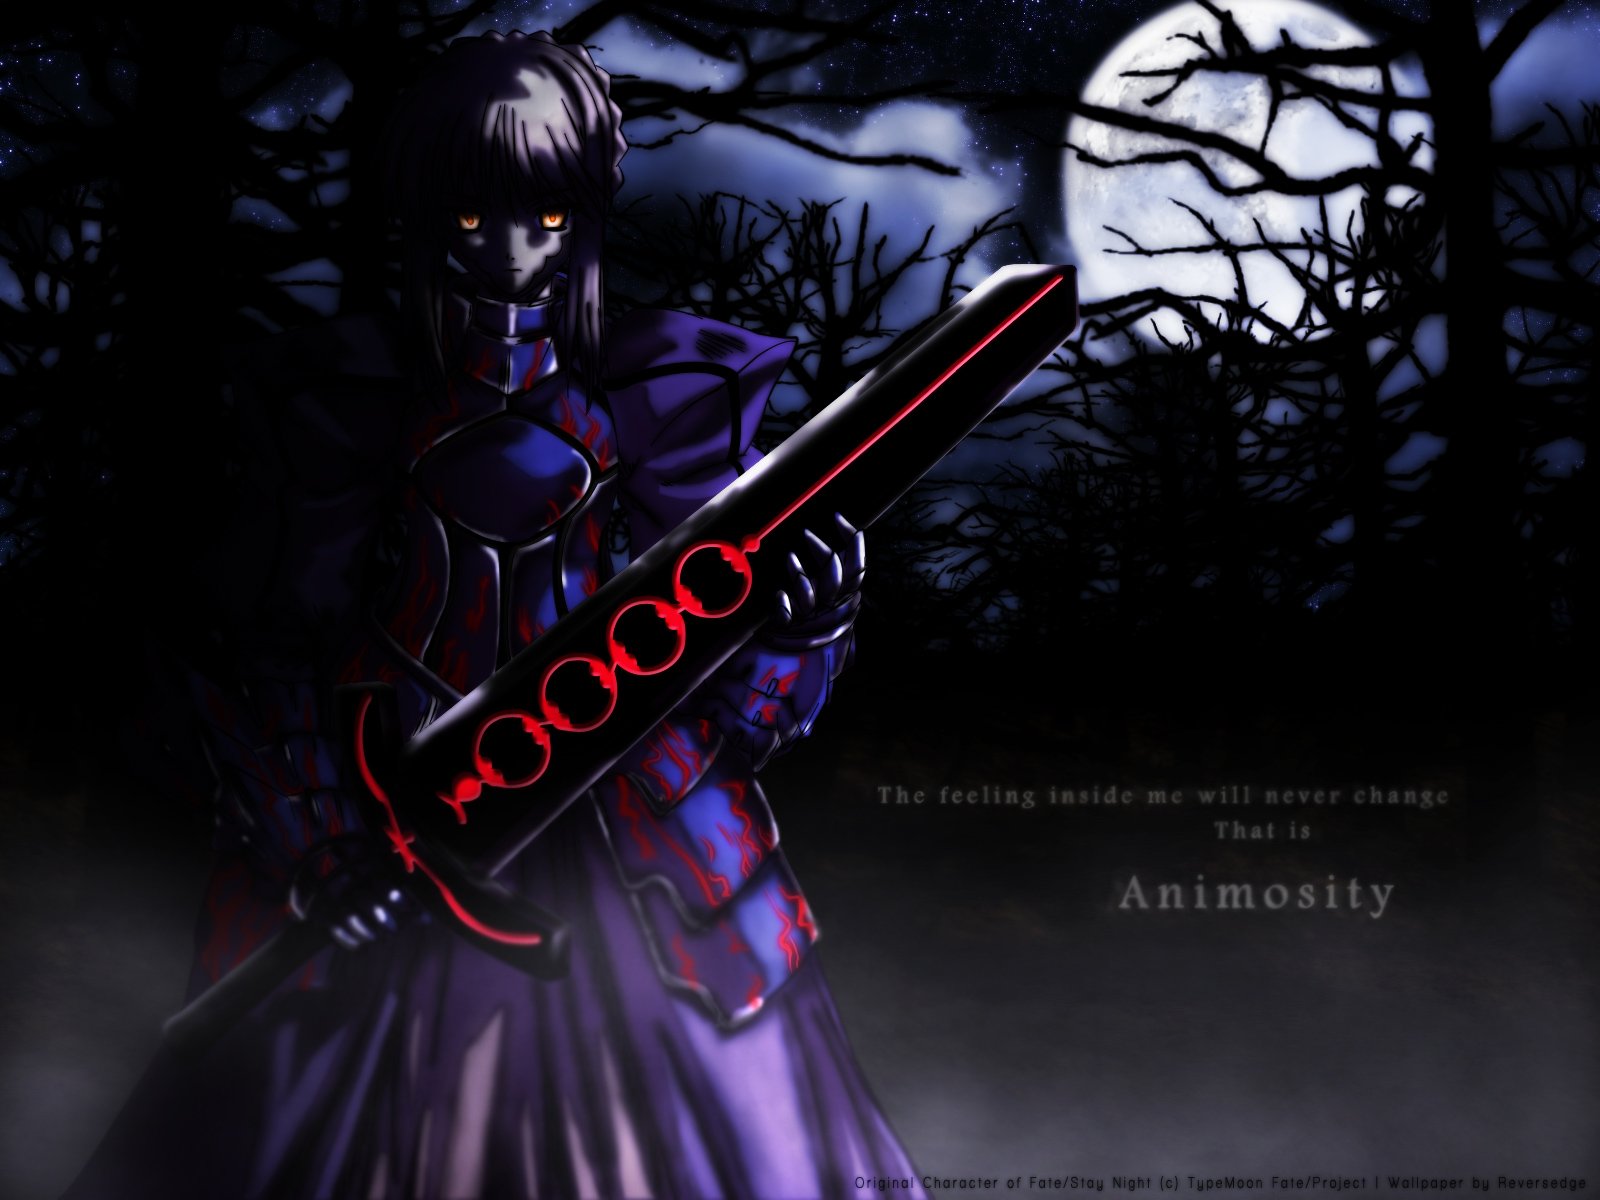 Fate stay night sexy girl warrior wallpaper 02 imagez only - Fate stay night wallpaper ...